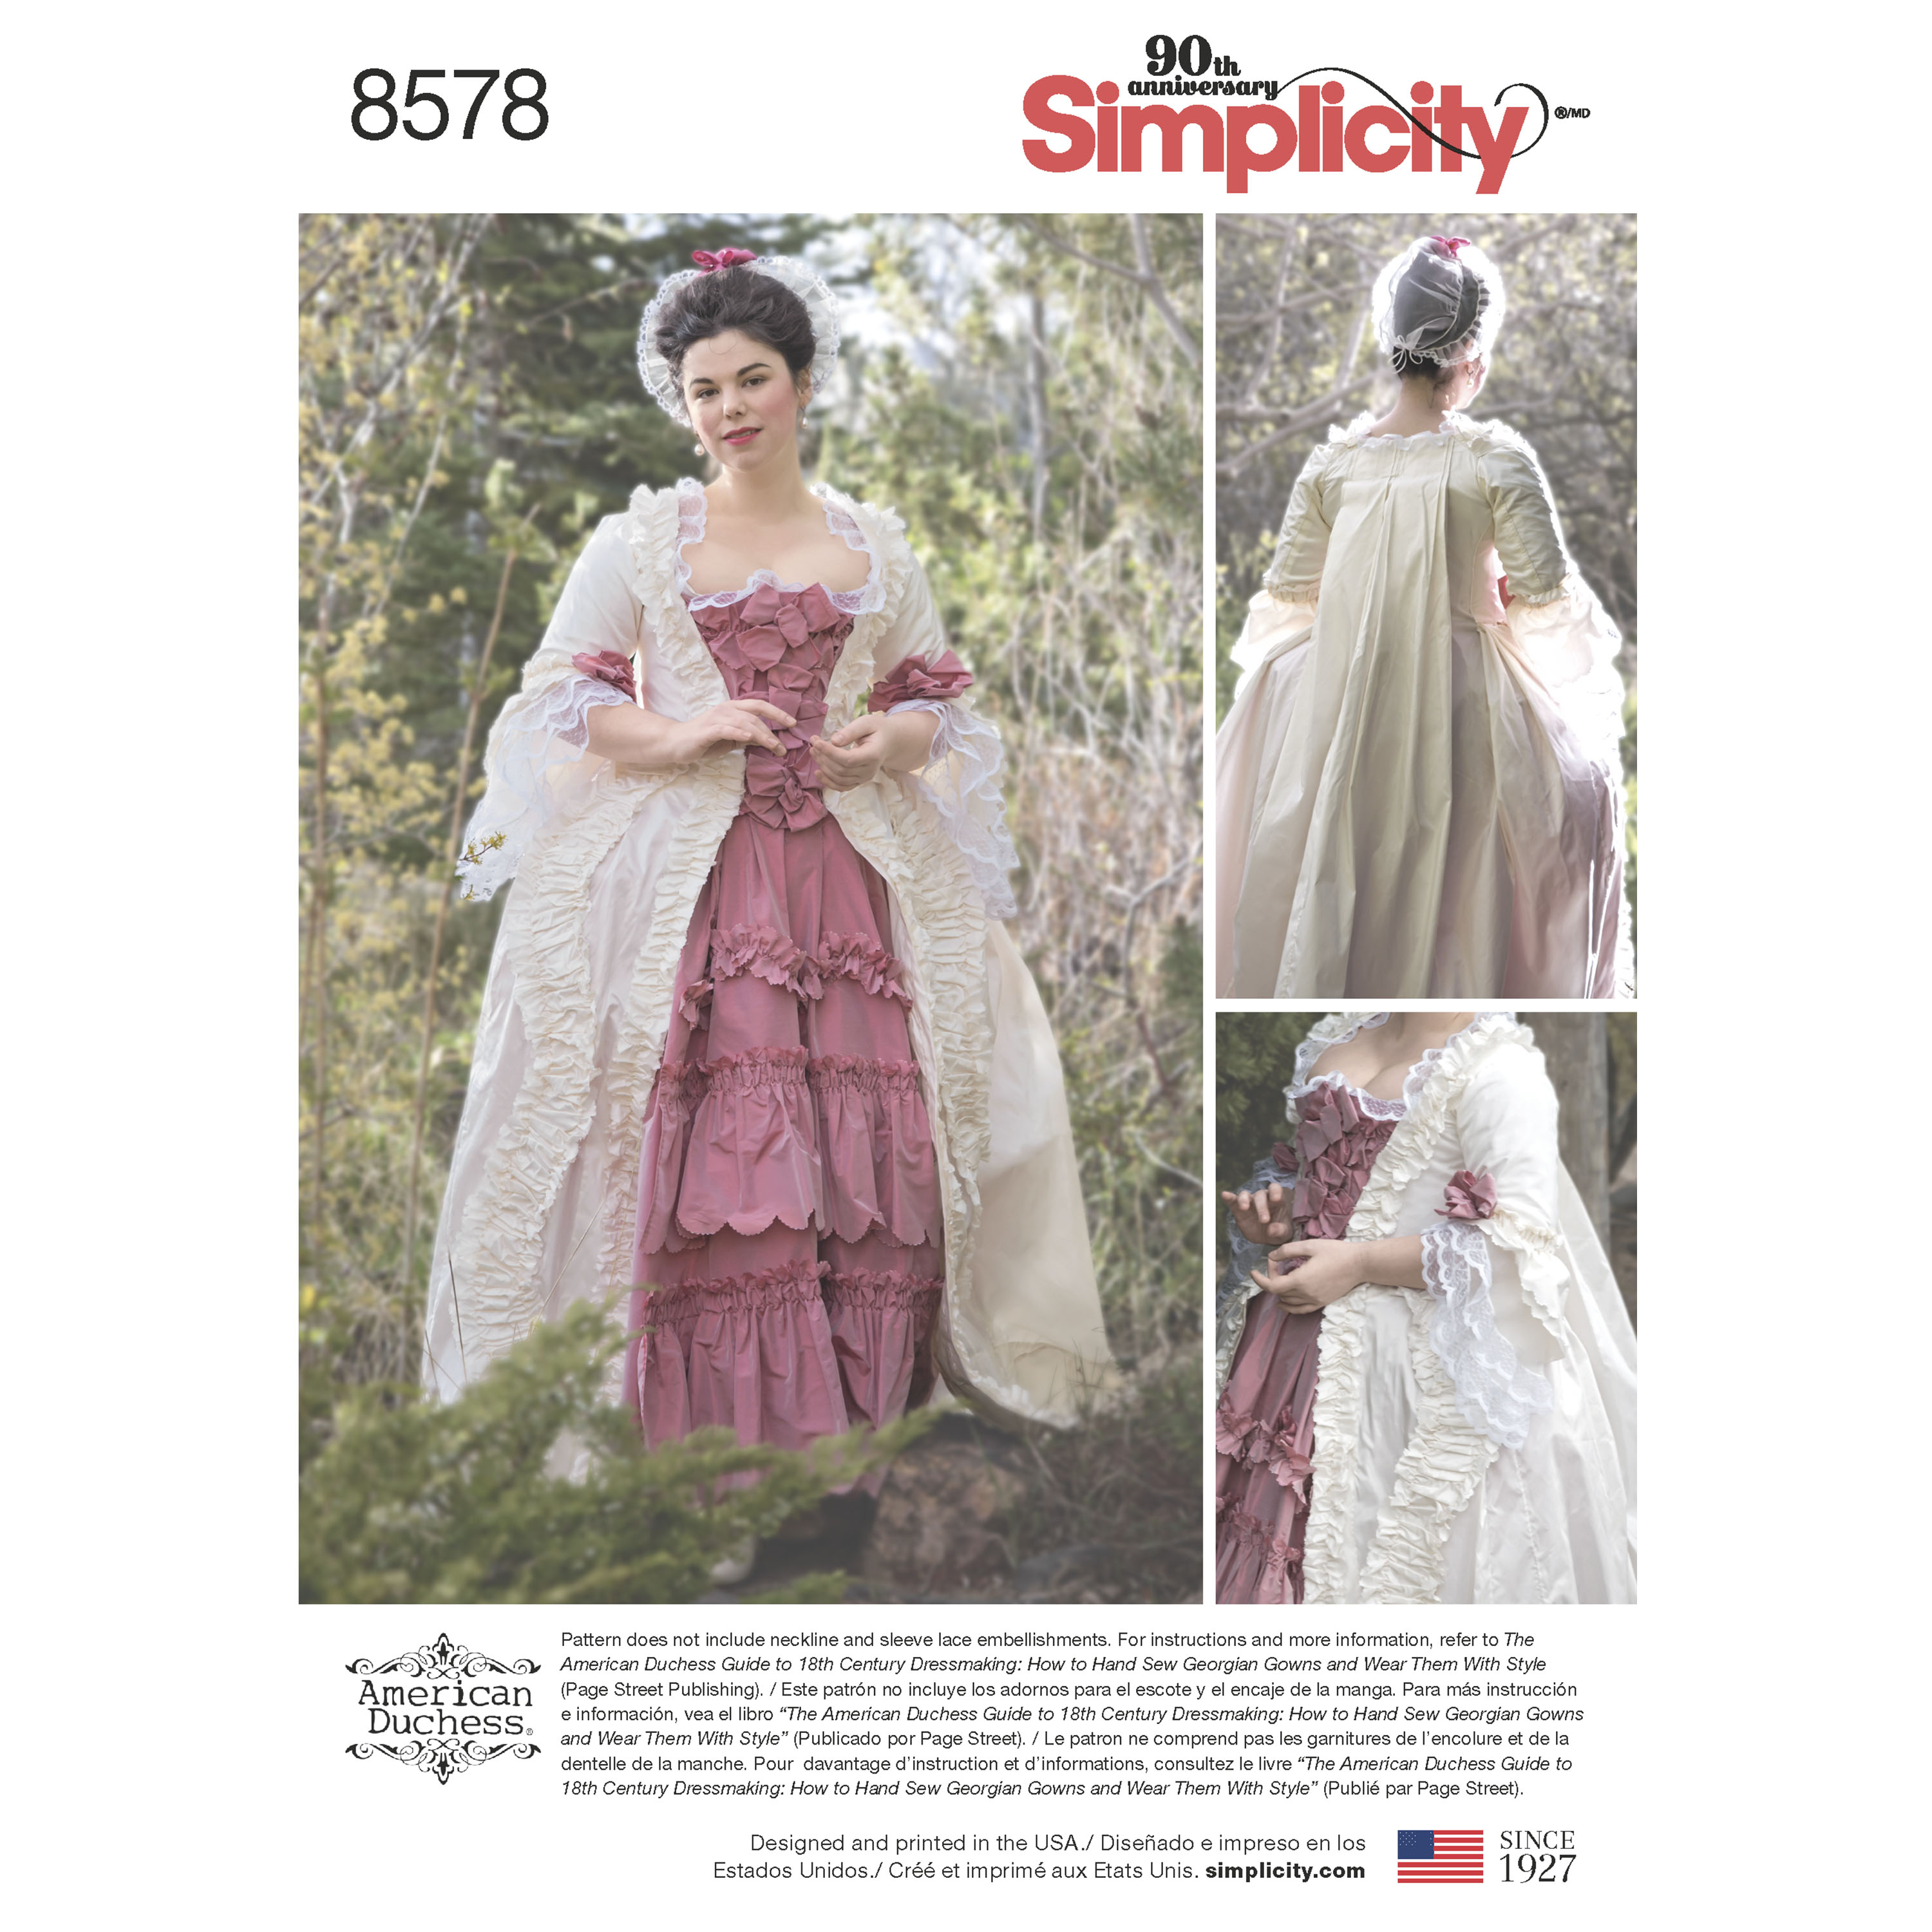 Simplicity Simplicity Pattern 8578 Misses' 18th Century Gown